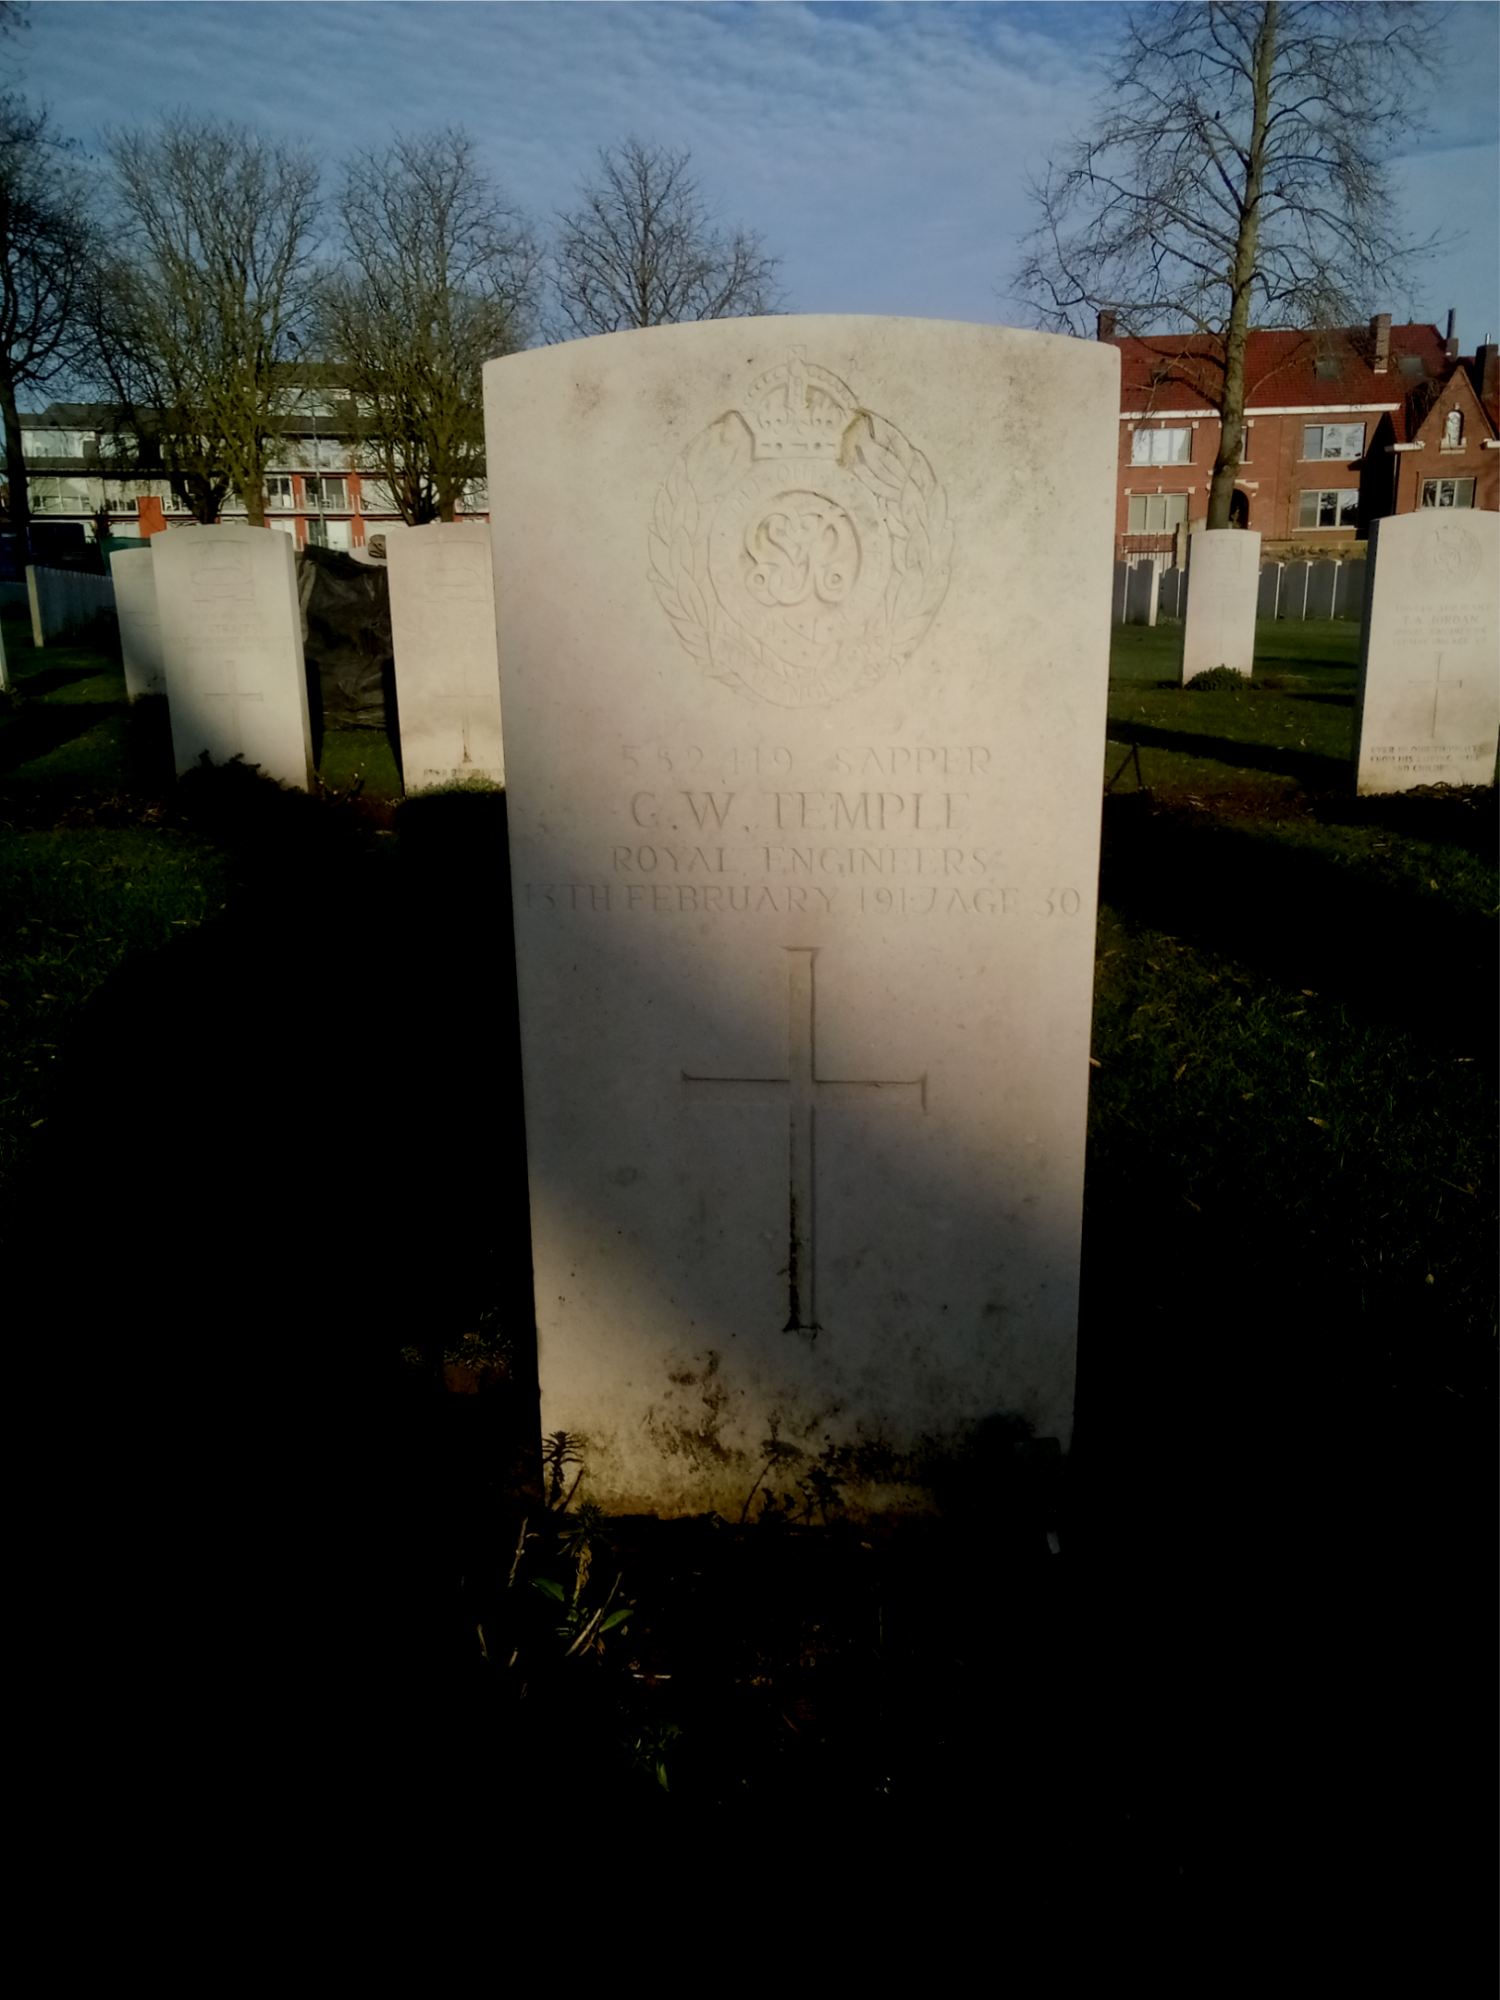 The gravestone of Sapper Charles William Temple in Ypres Reservoir Cemetery